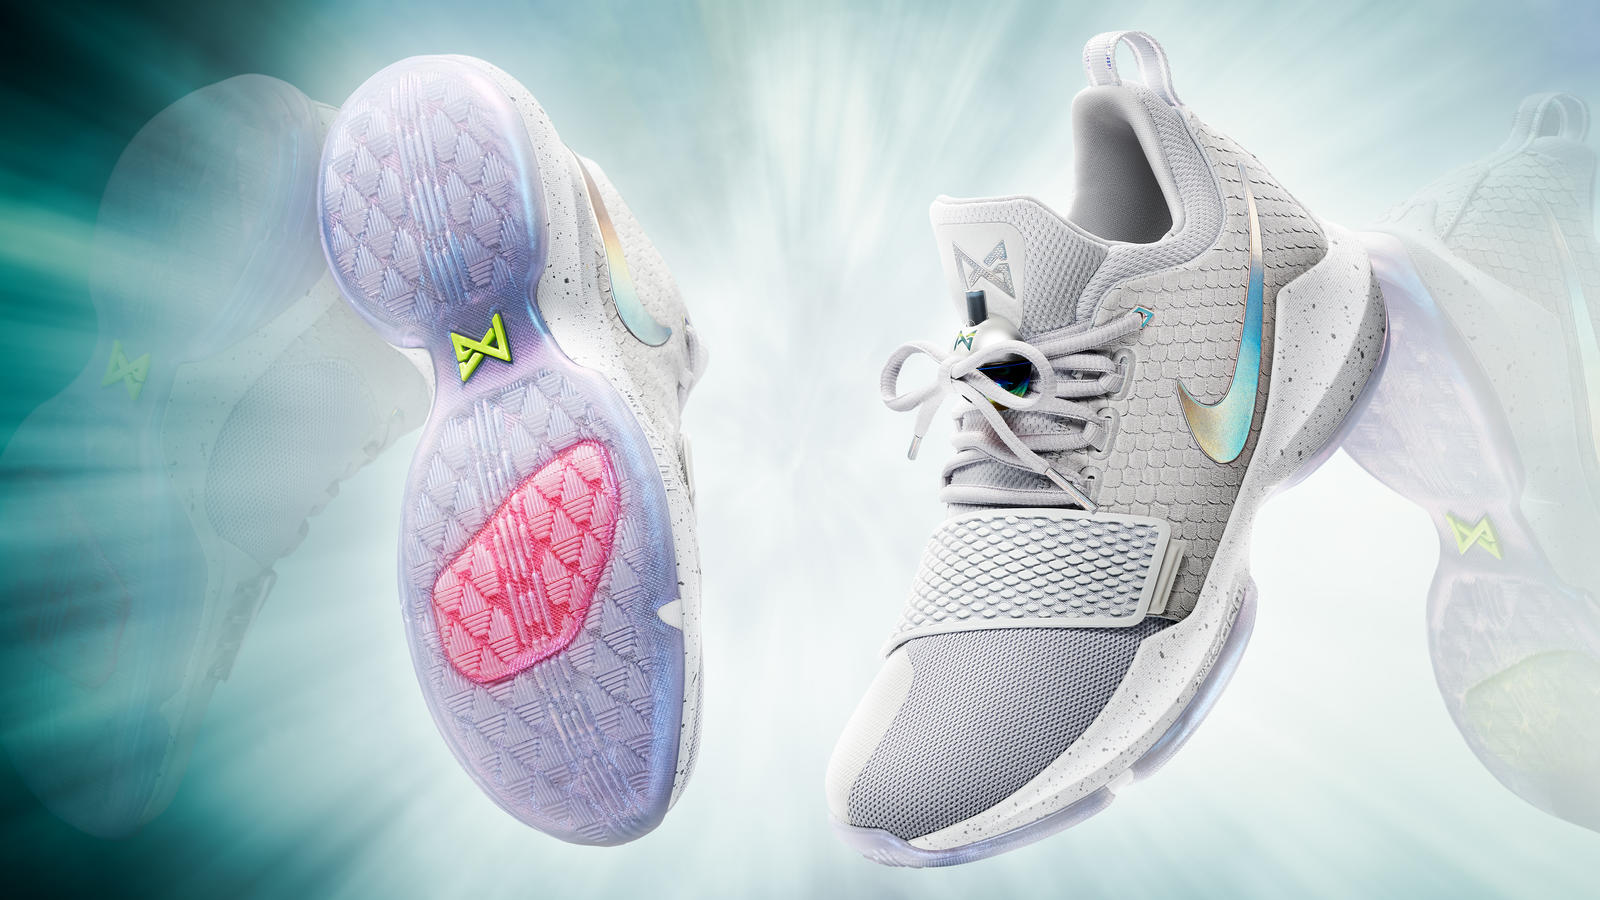 16 420 nike pg1 hero pair gray 03a hd 1600